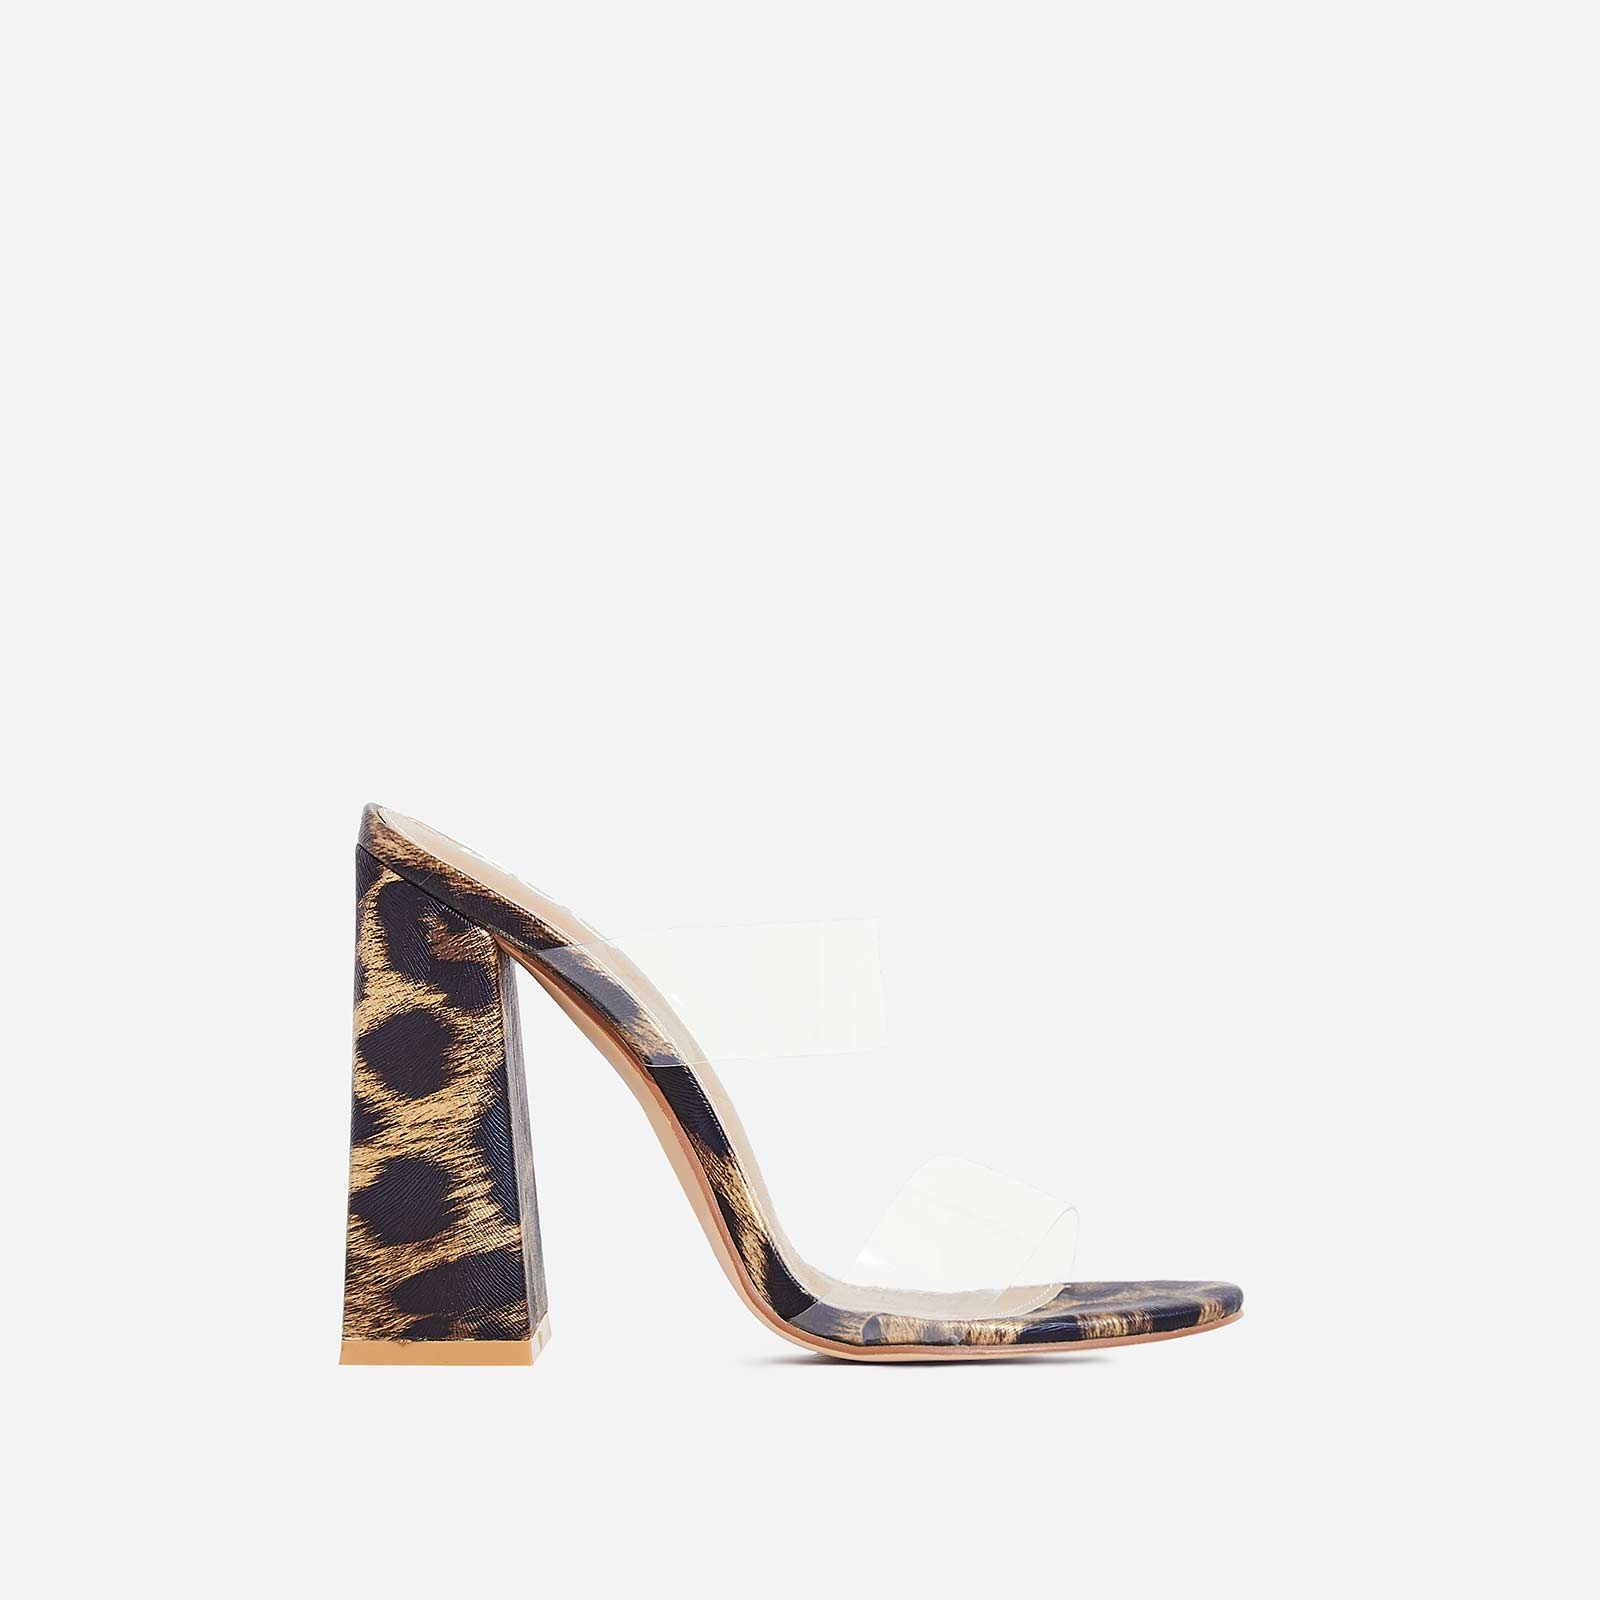 Hester Flared Block Heel Perspex Mule In Tan Leopard Print Faux Leather